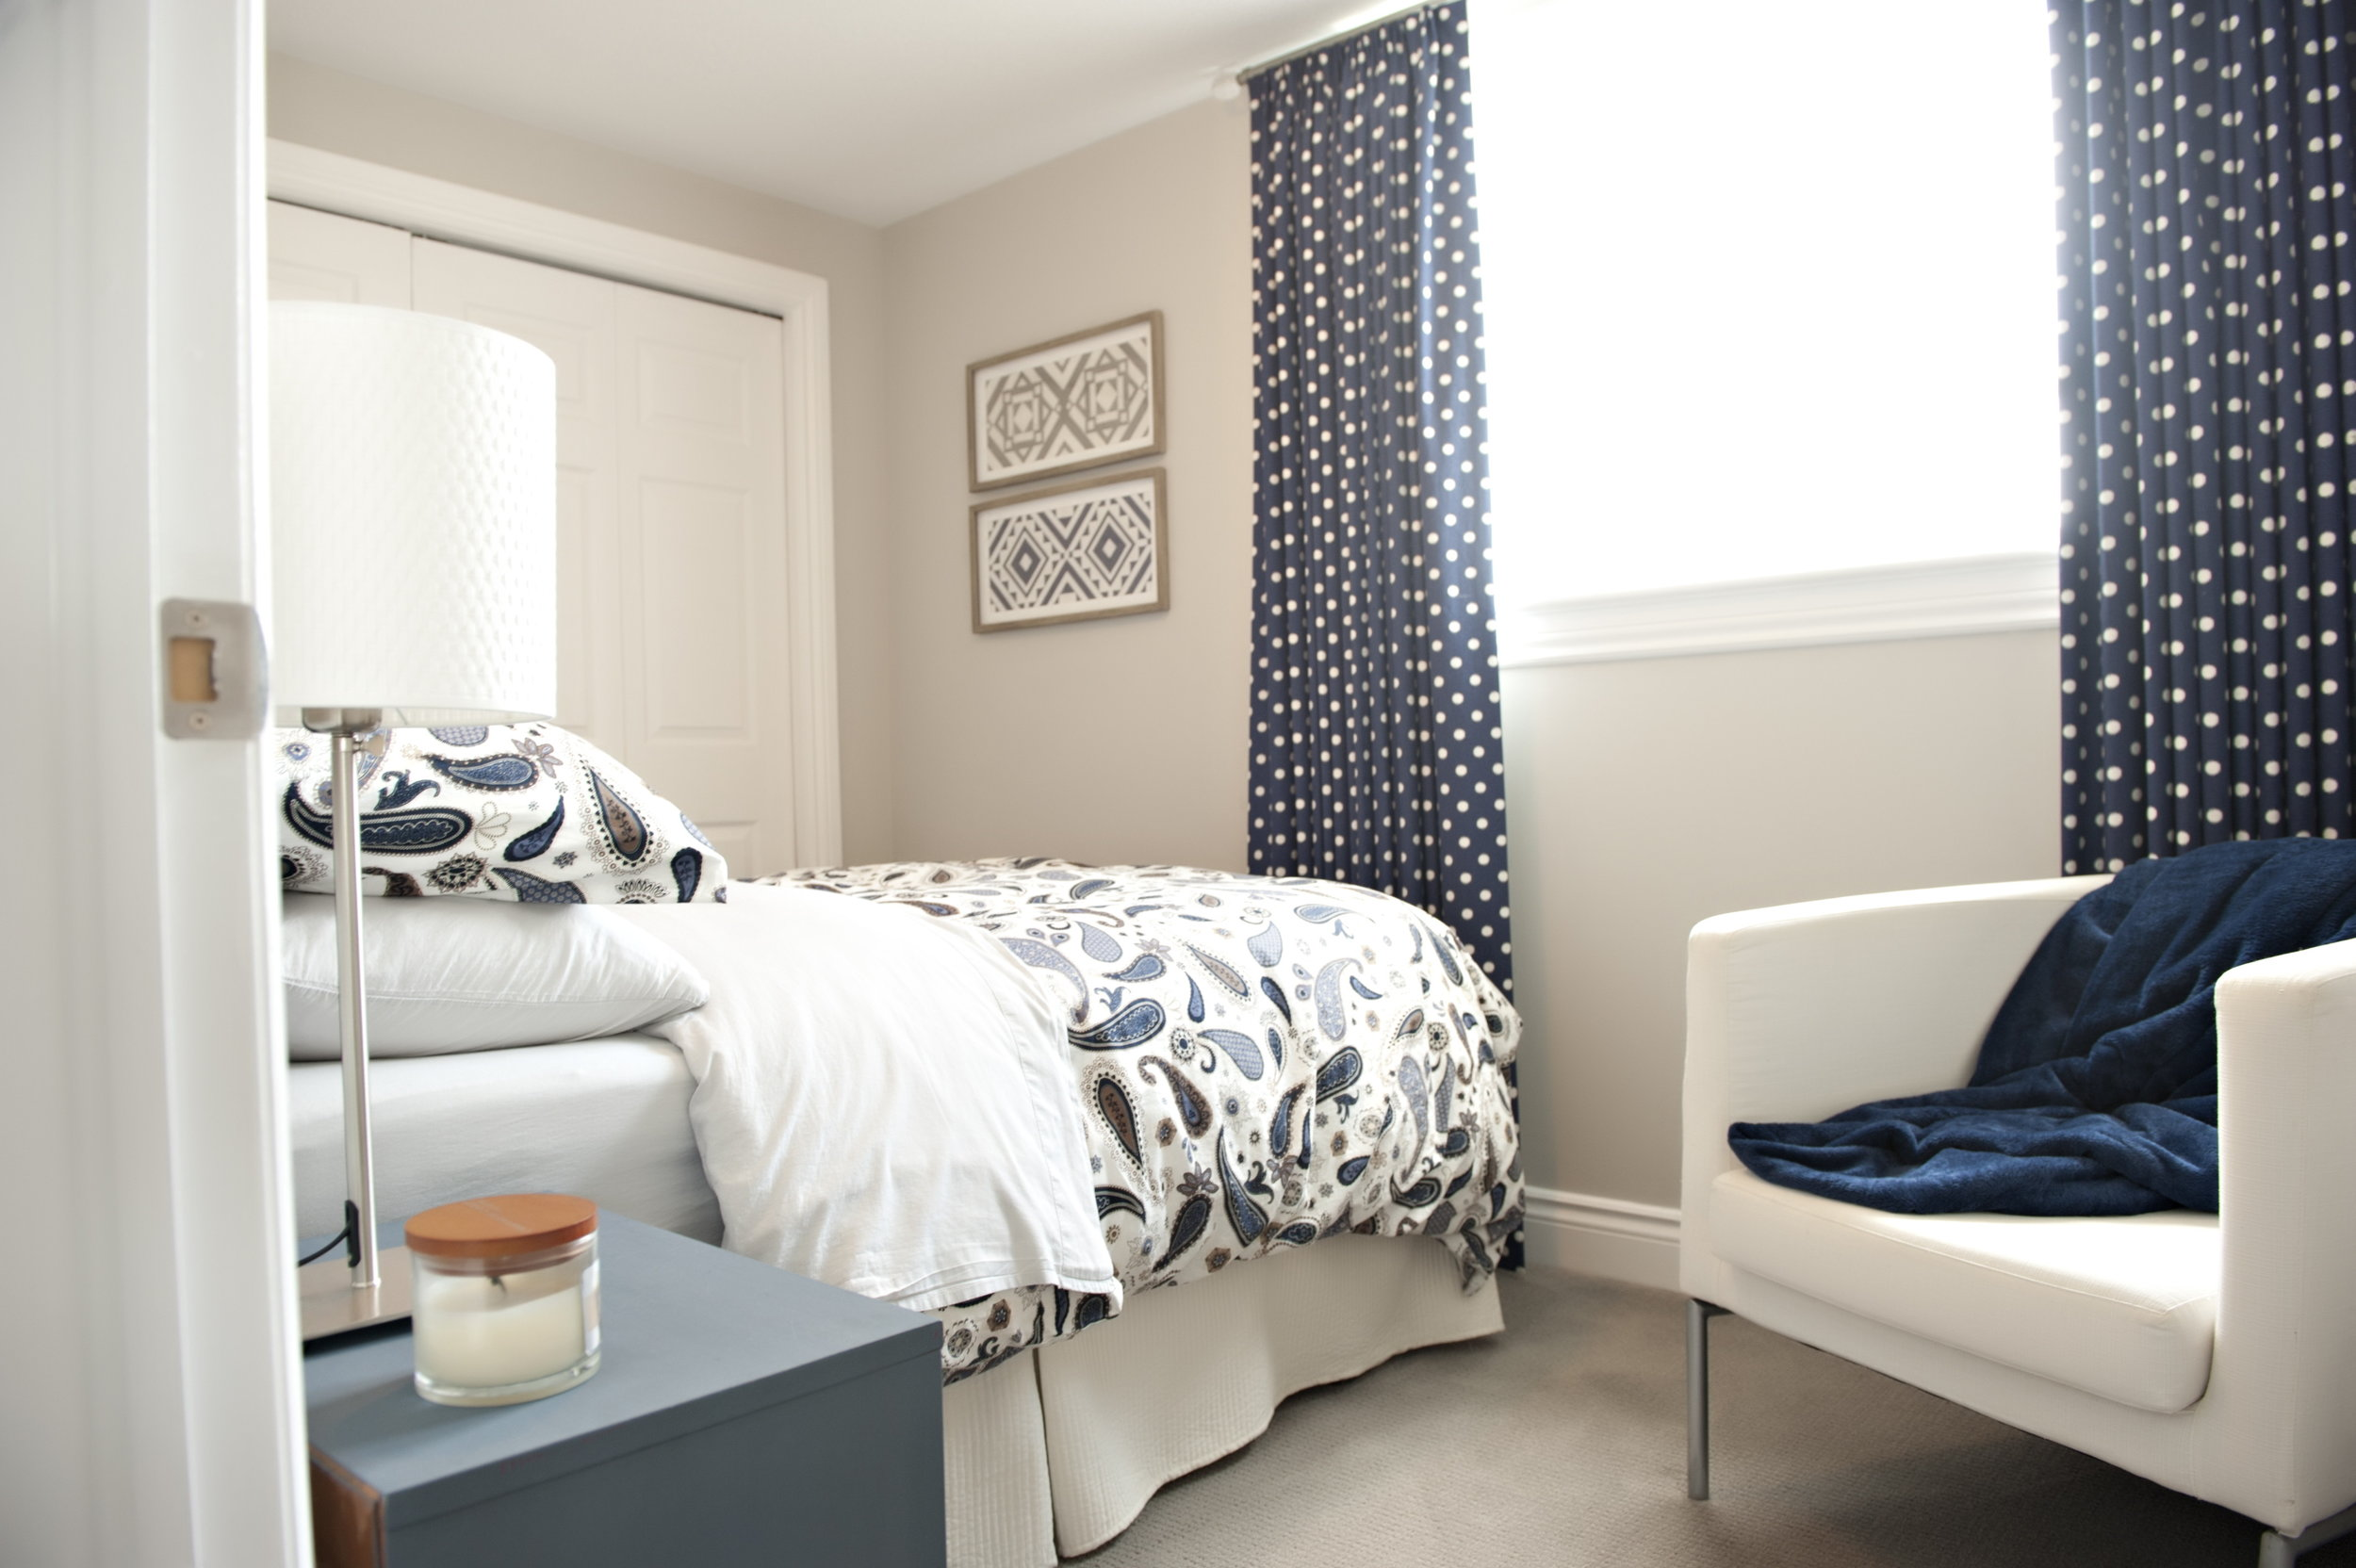 McGregor-Project-Interior-Design-Bedroom-Blue-Bedding